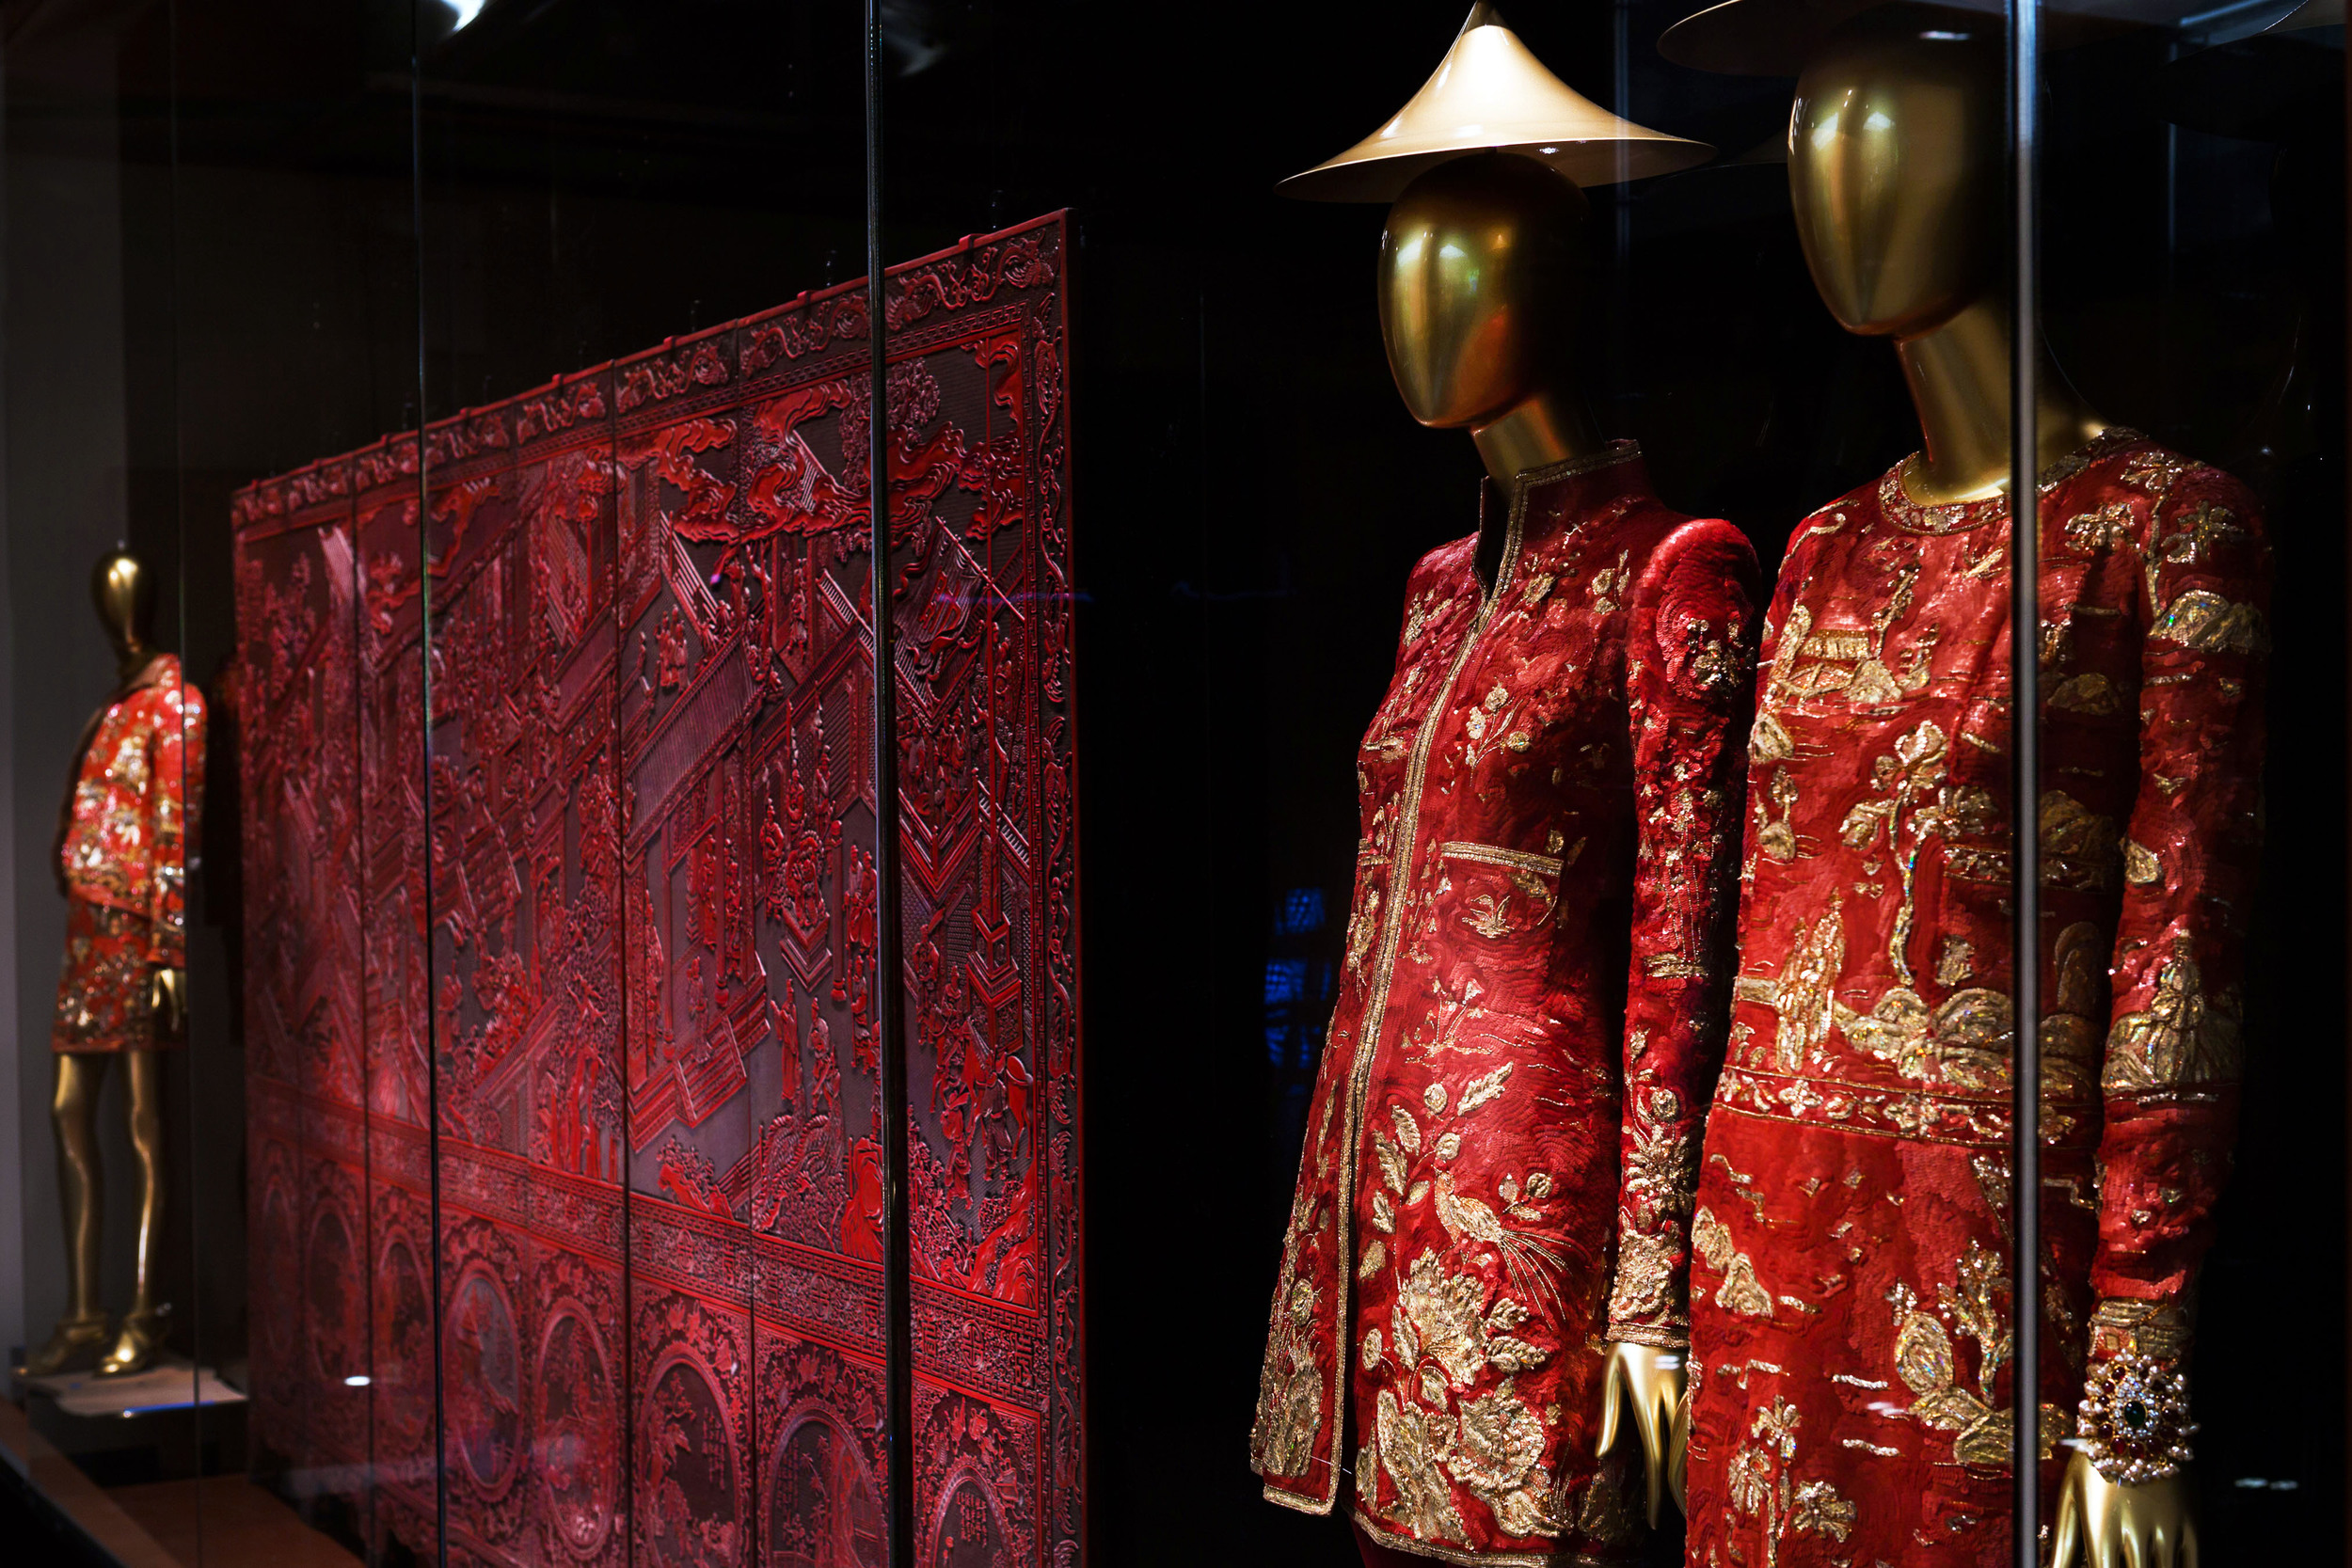 Chinese Galleries, Douglas Dillon Galleries, Chinoiserie Photo: © The Metropolitan Museum of Art